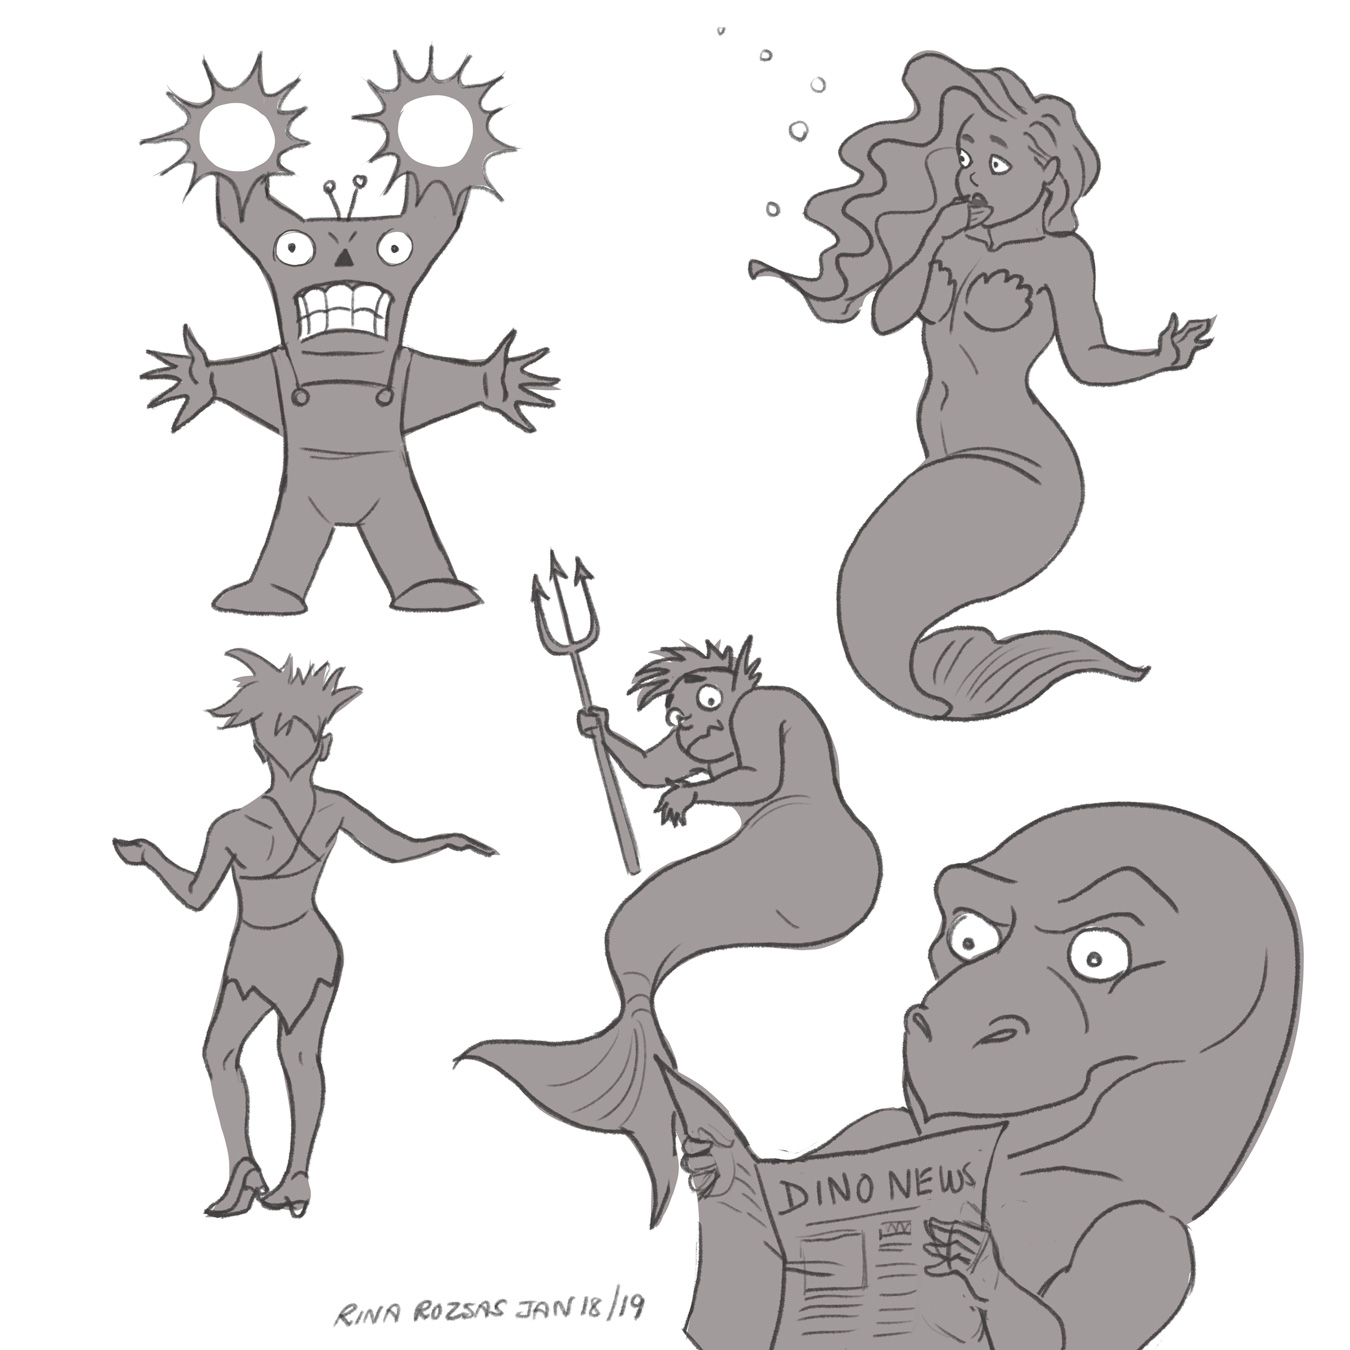 Random Characters From Silhouettes